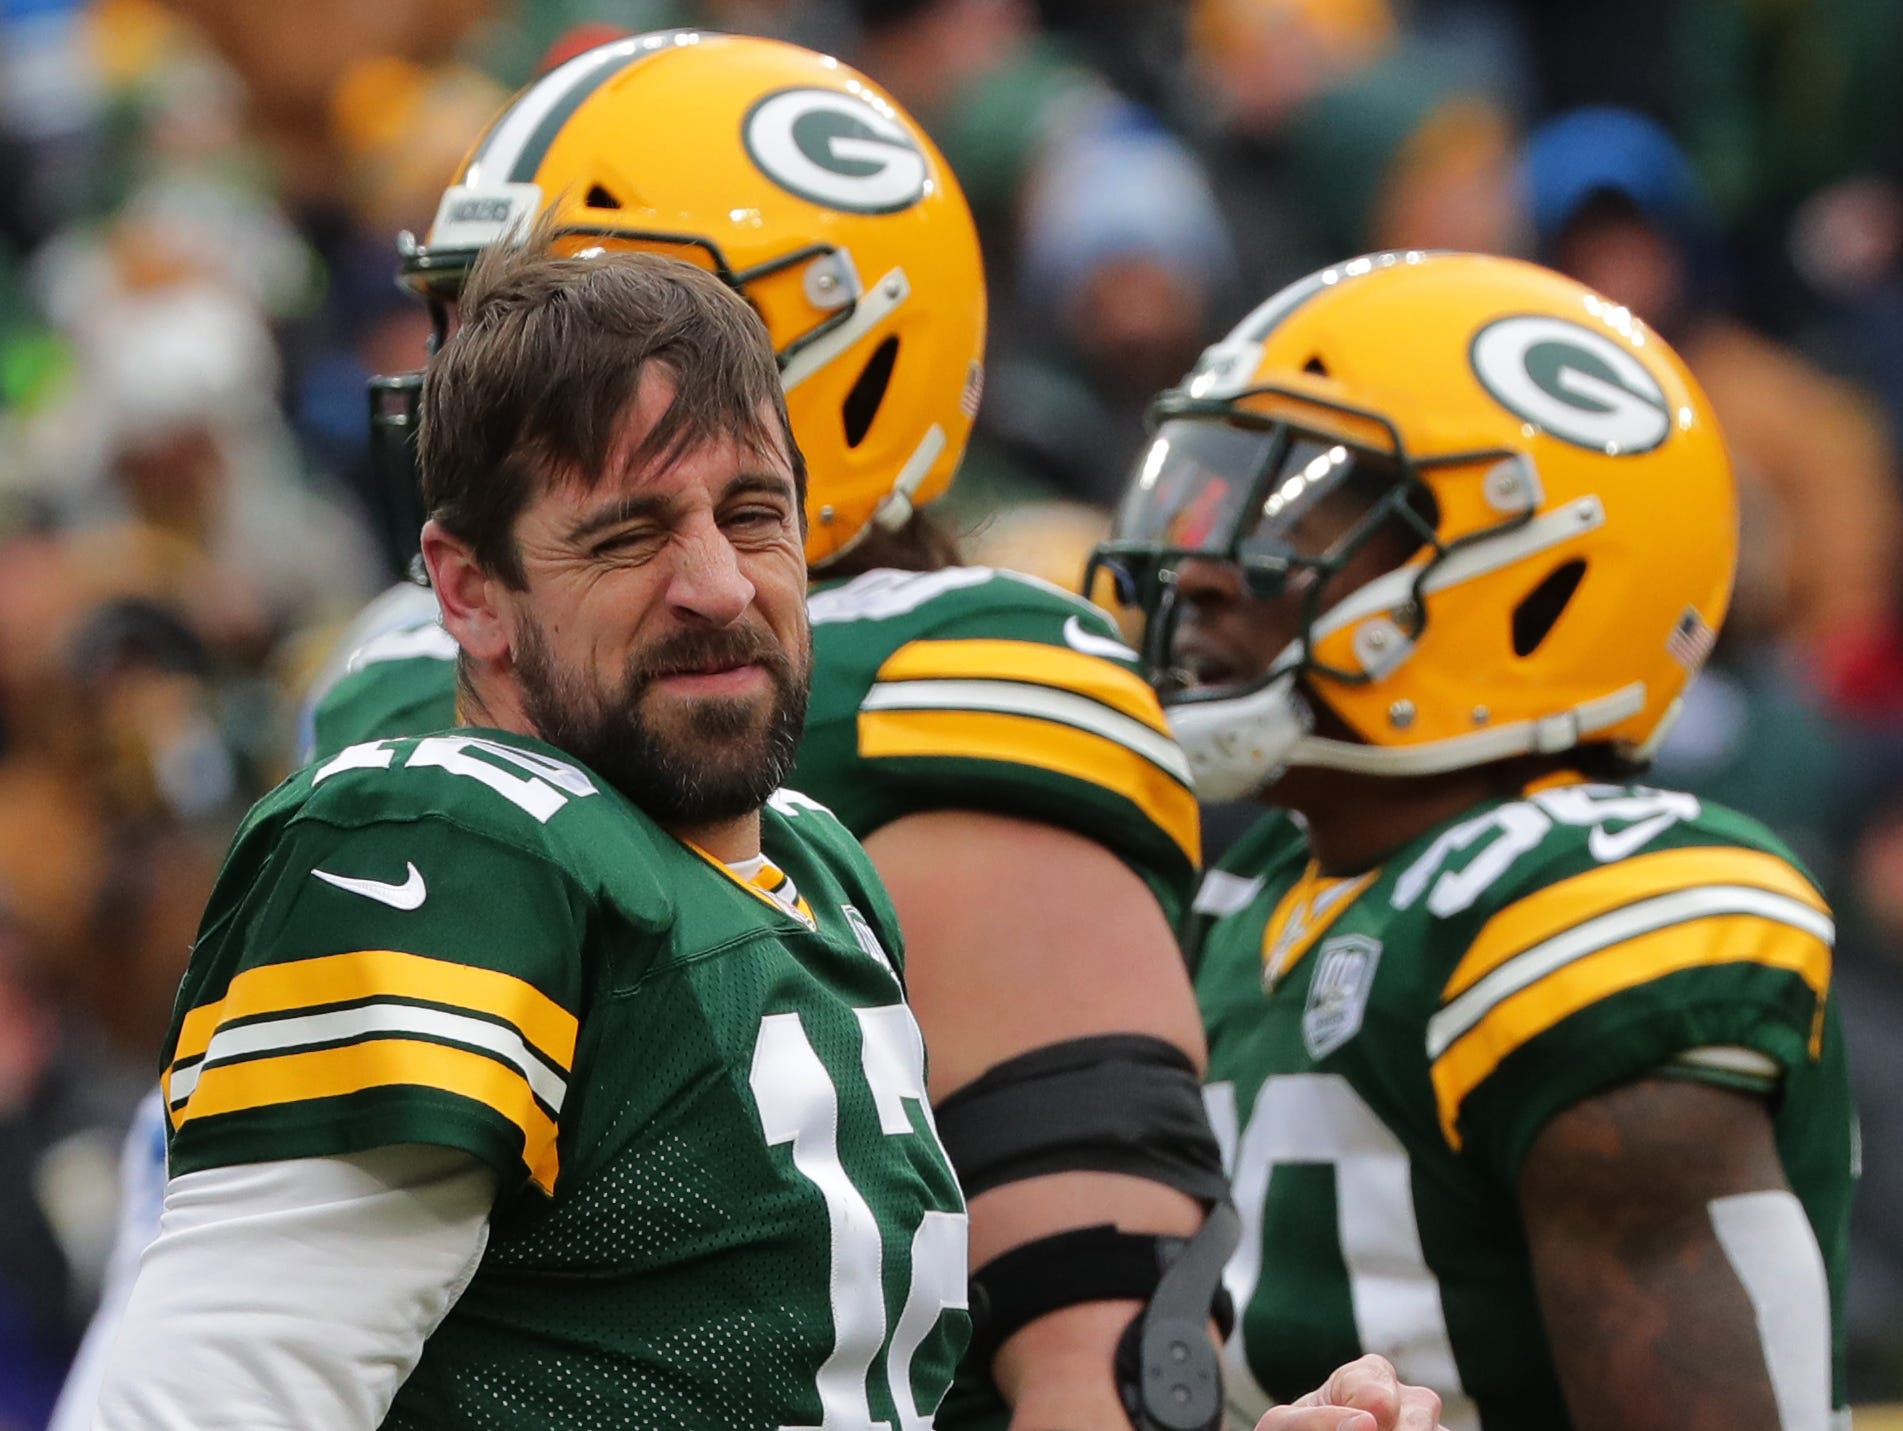 Green Bay Packers quarterback Aaron Rodgers (12) winces after being sacked during the first quarter of their game Sunday, December 30, 2018 at Lambeau Field in Green Bay, Wis. The Detroit Lions beat the Green Bay Packers 31-0.  MARK HOFFMAN/MILWAUKEE JOURNAL SENTINEL